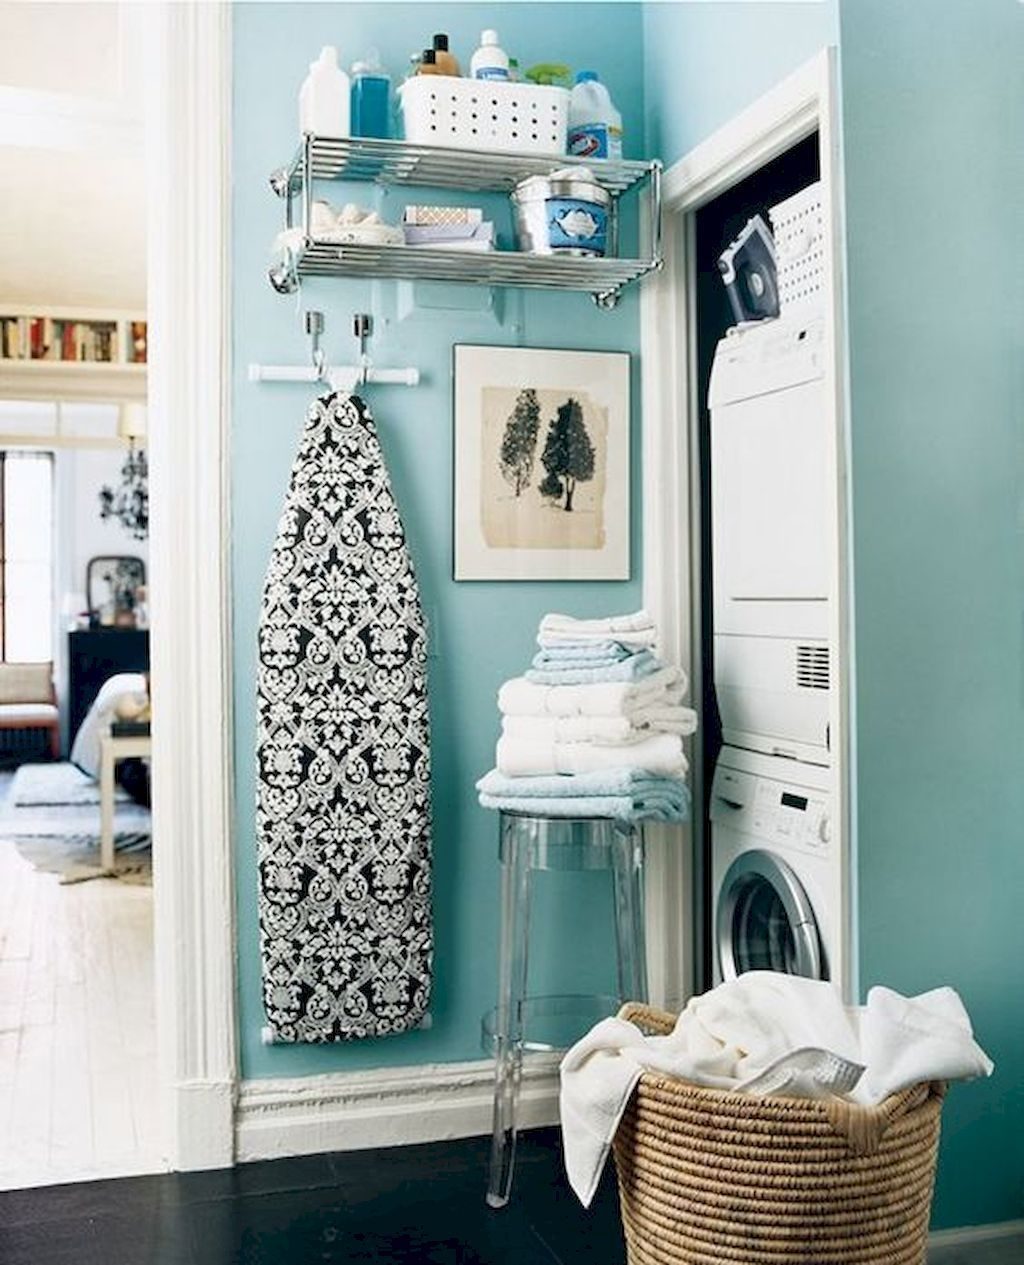 Easy Diy College Apartment Decorating Ideas On A Budget 18